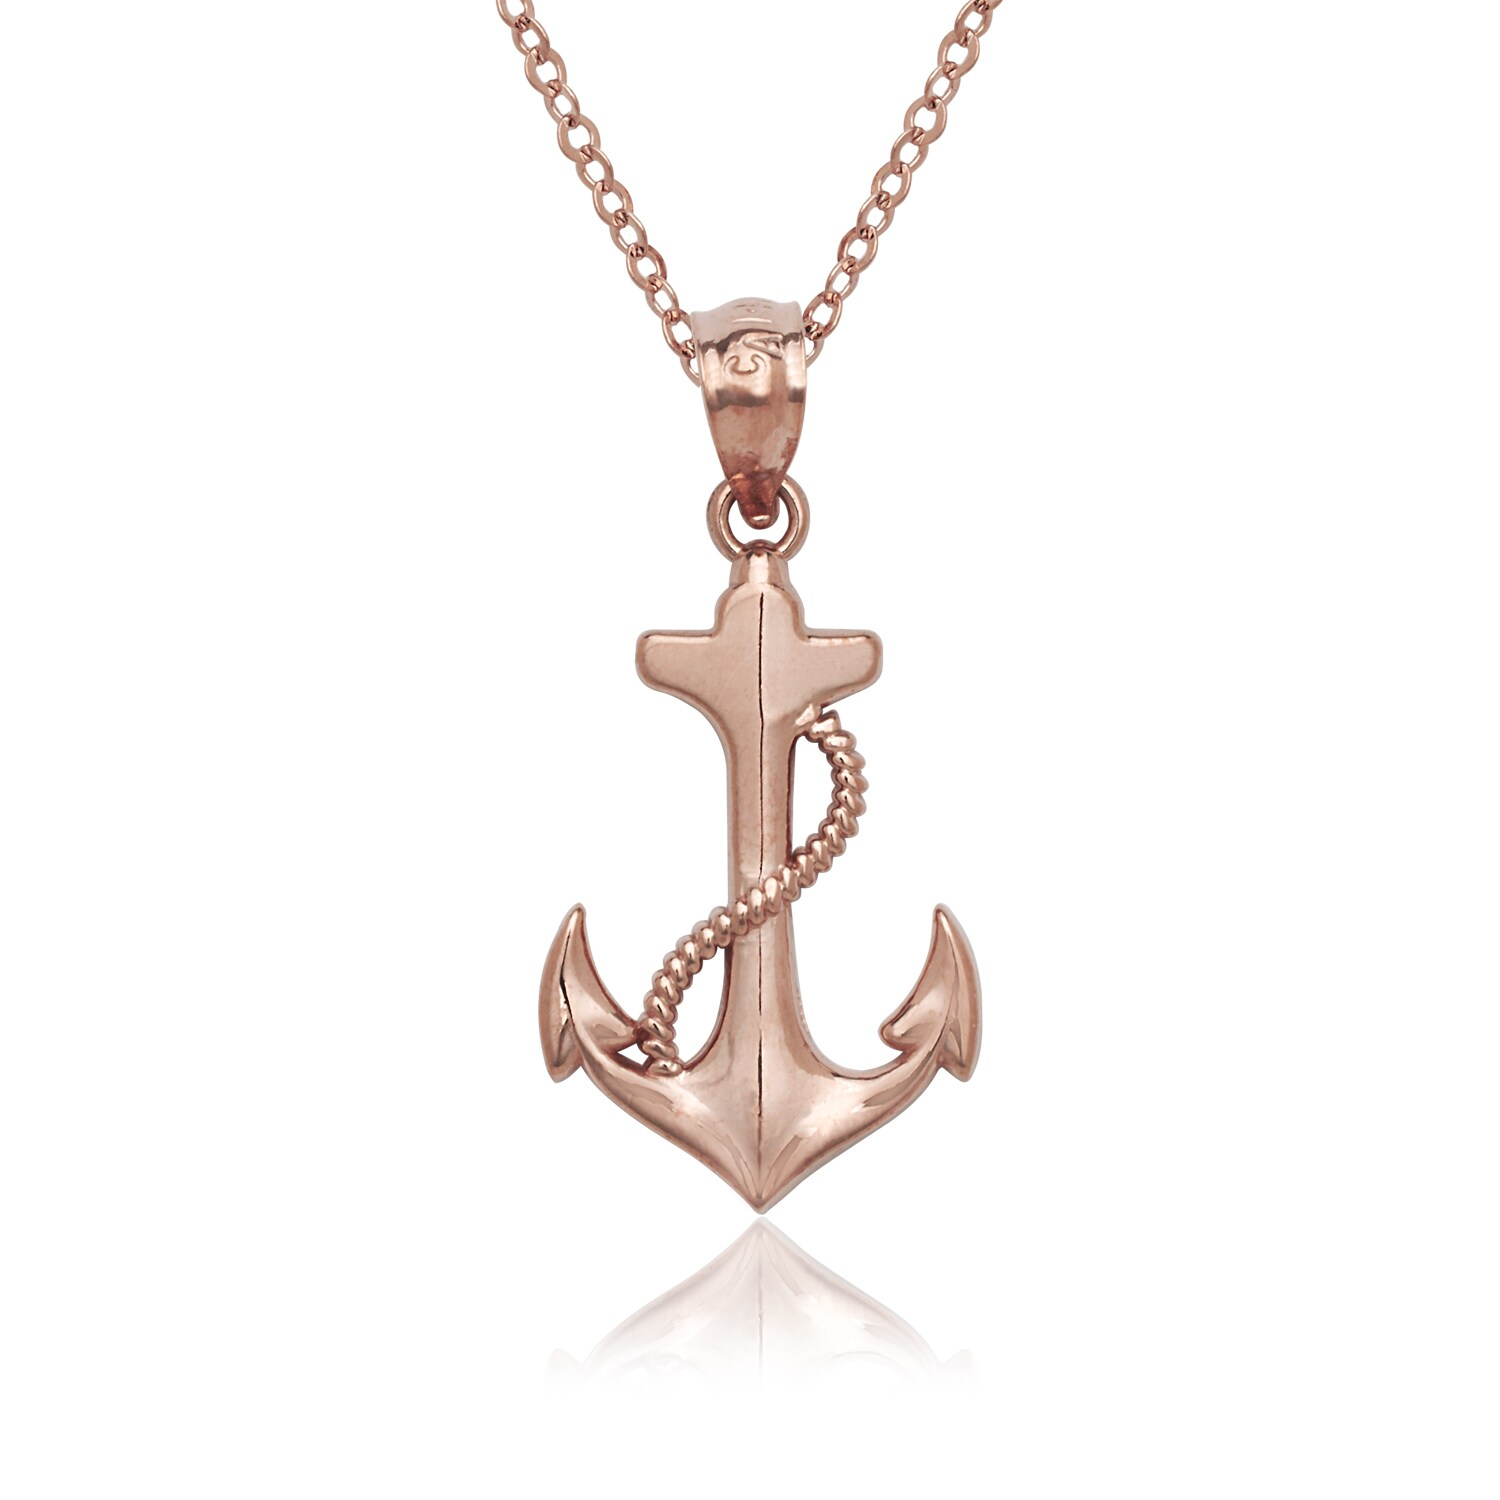 Shop 14k rose gold anchor pendant necklace pink free shipping shop 14k rose gold anchor pendant necklace pink free shipping today overstock 11909857 aloadofball Gallery